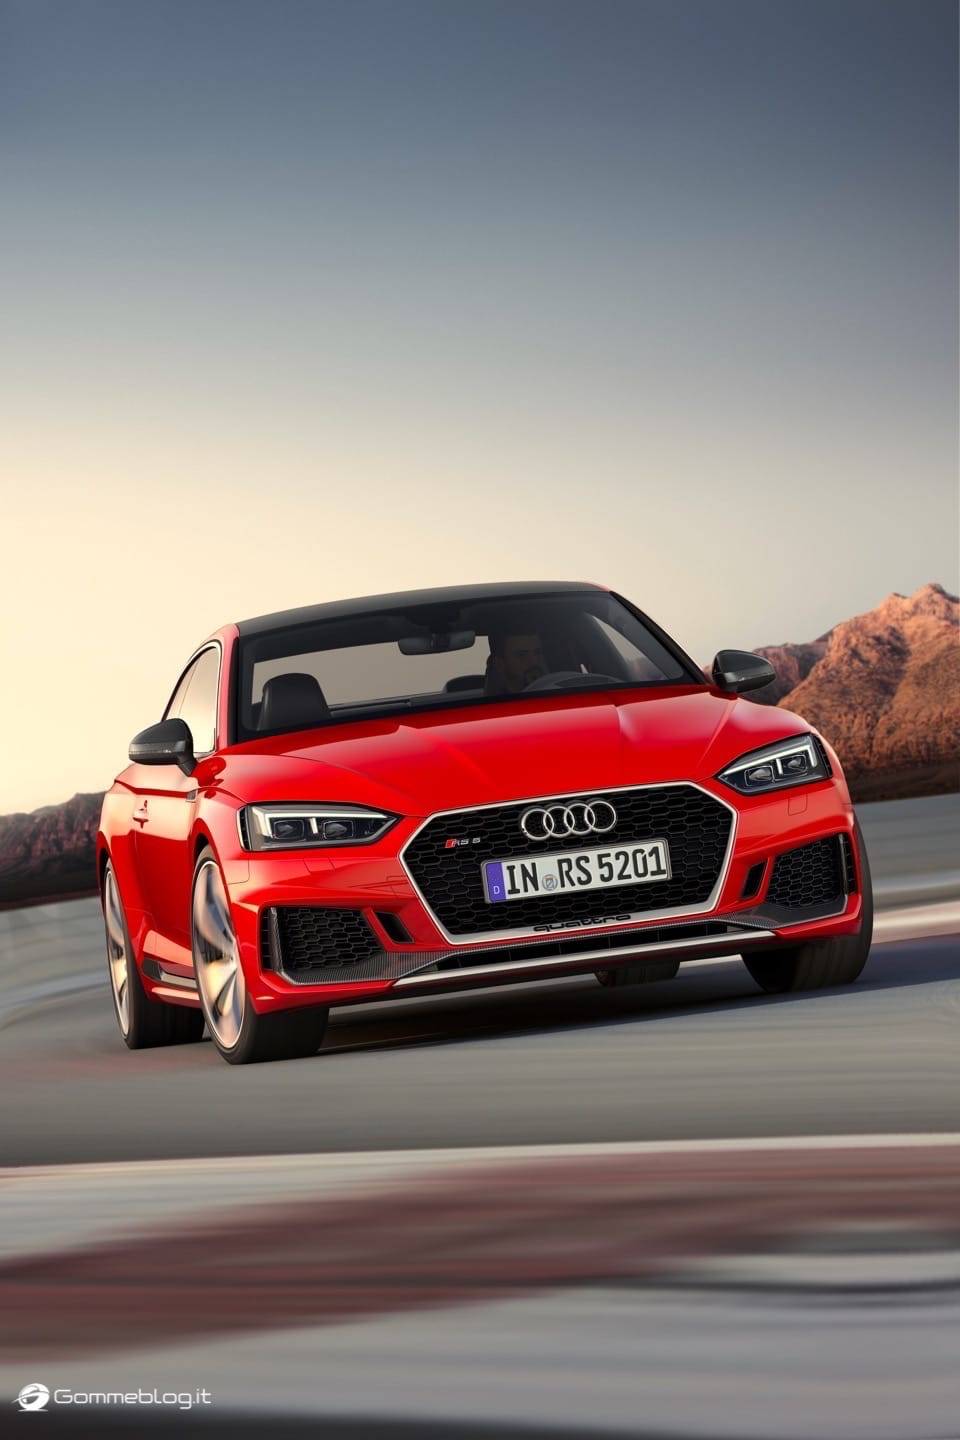 Audi RS 5 Coupé: V6 biturbo 2.9 TFSI, 450 CV e 0-100 in 3,9 sec 54